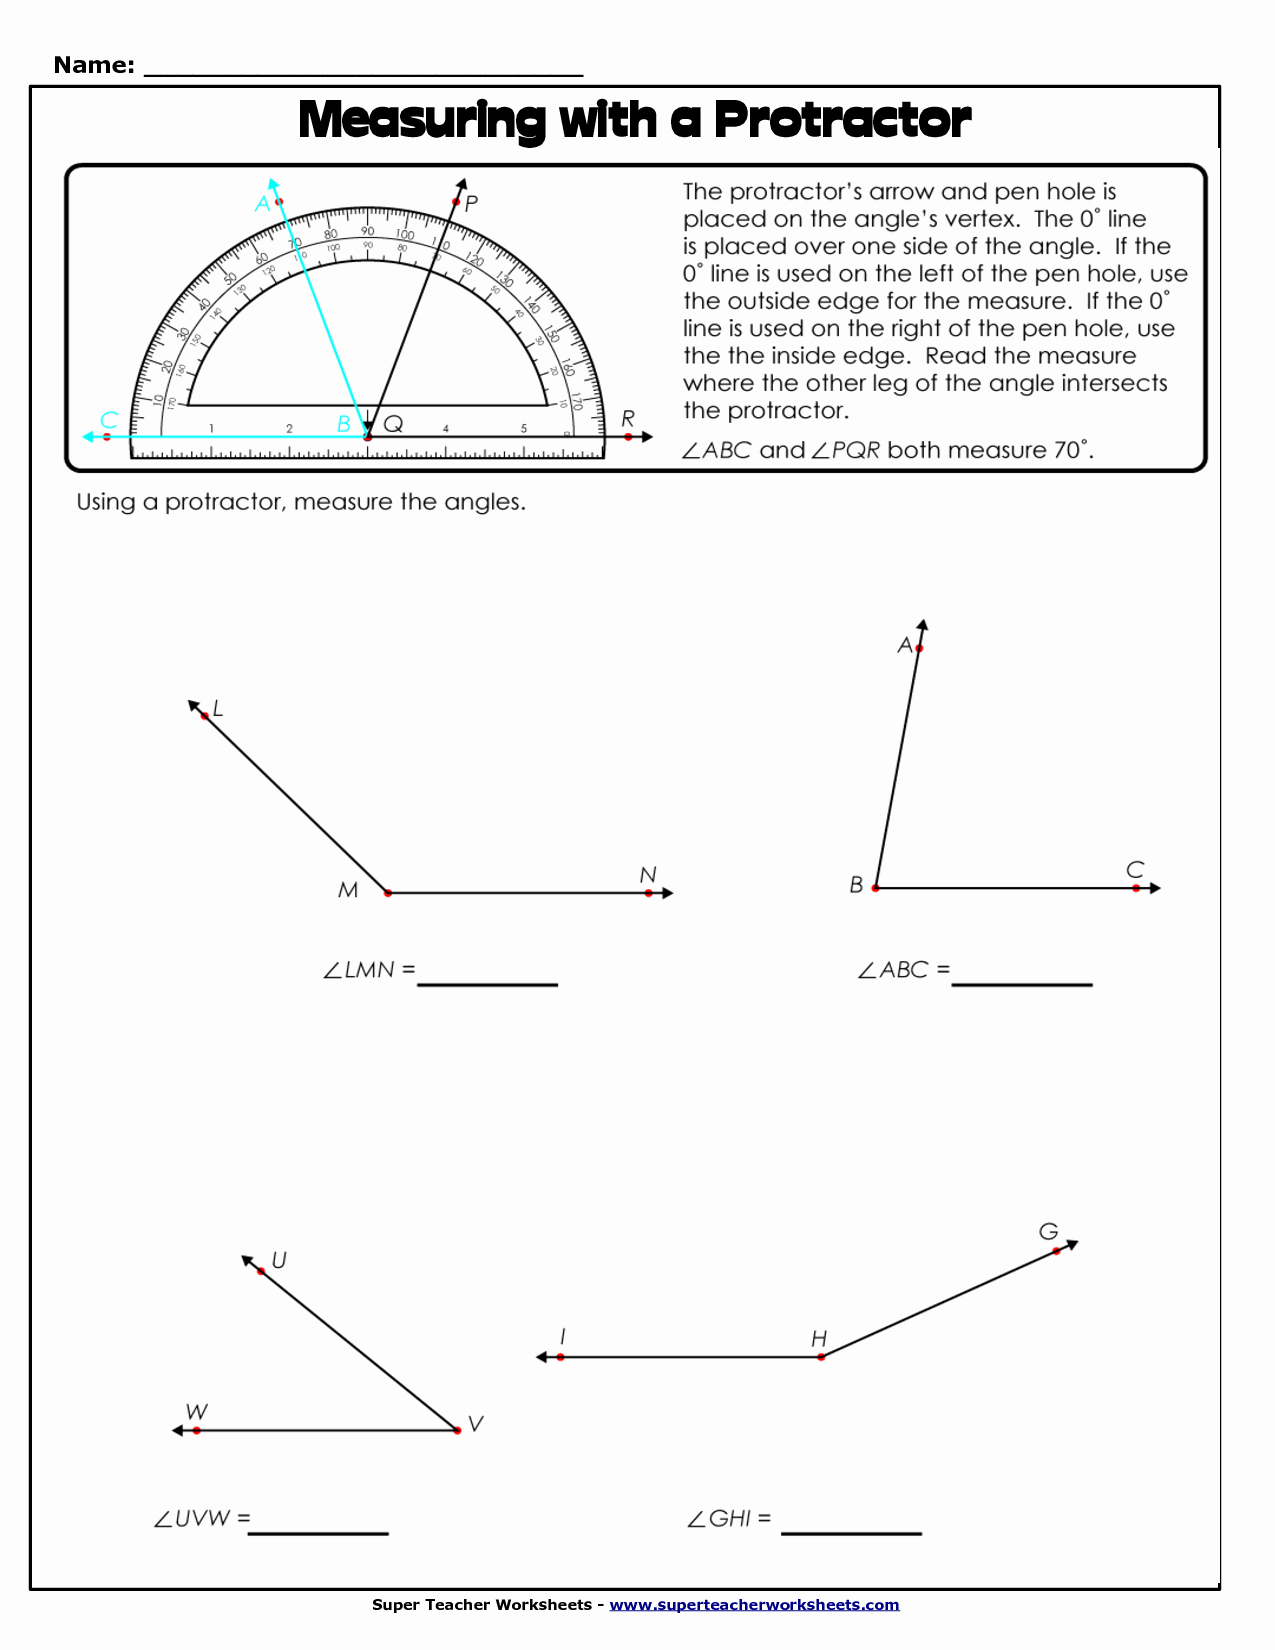 Pairs Of Angles Worksheet Answers Inspirational Pairs Angles Worksheet Answers